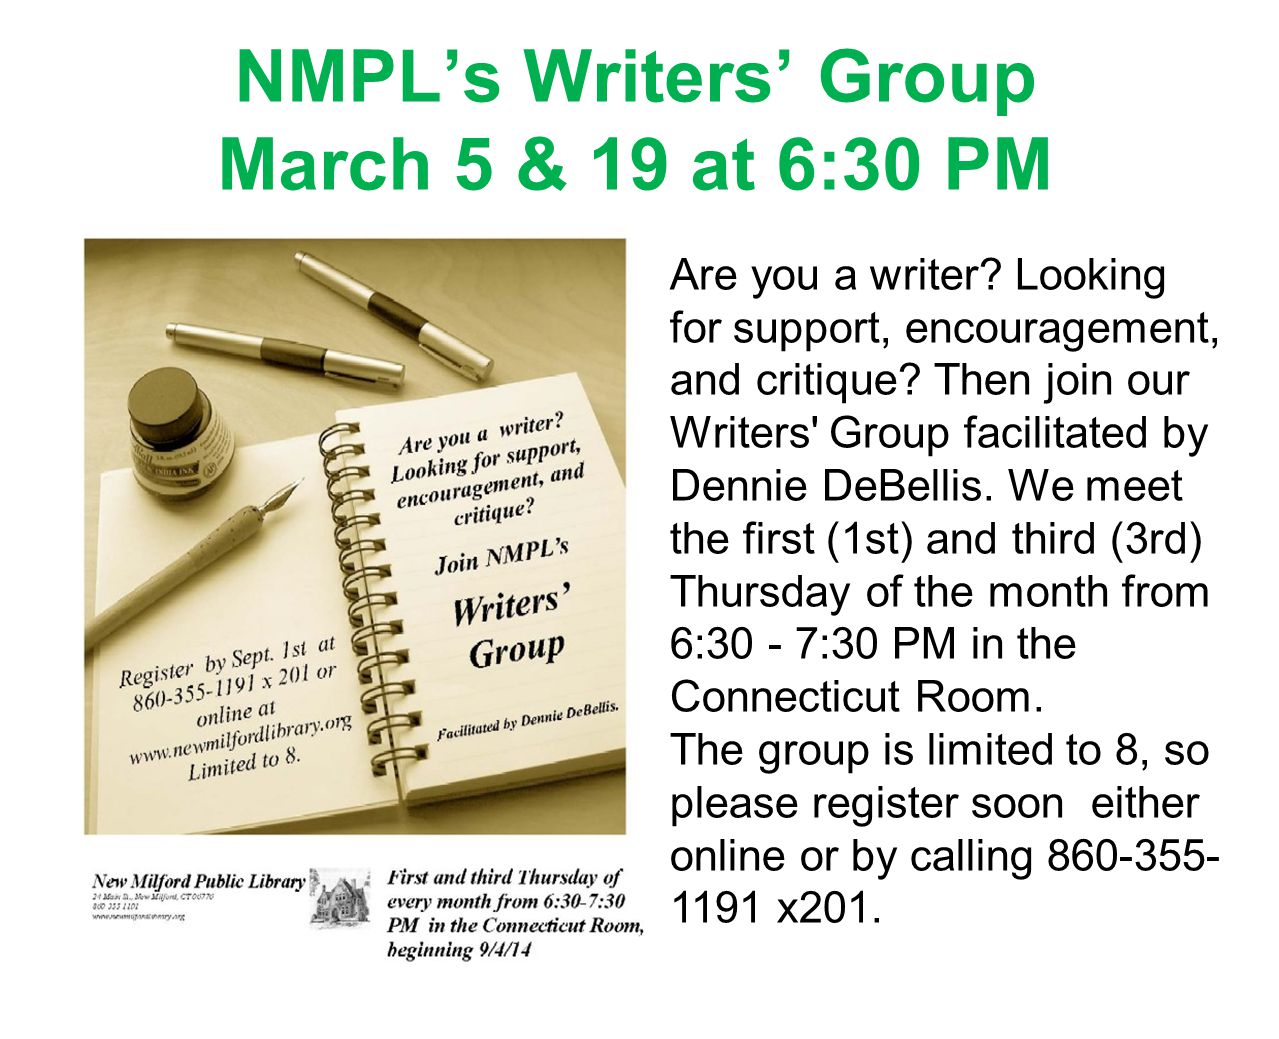 NMPL's Writers' Group March 5 & 19 at 6:30 PM Are you a writer.